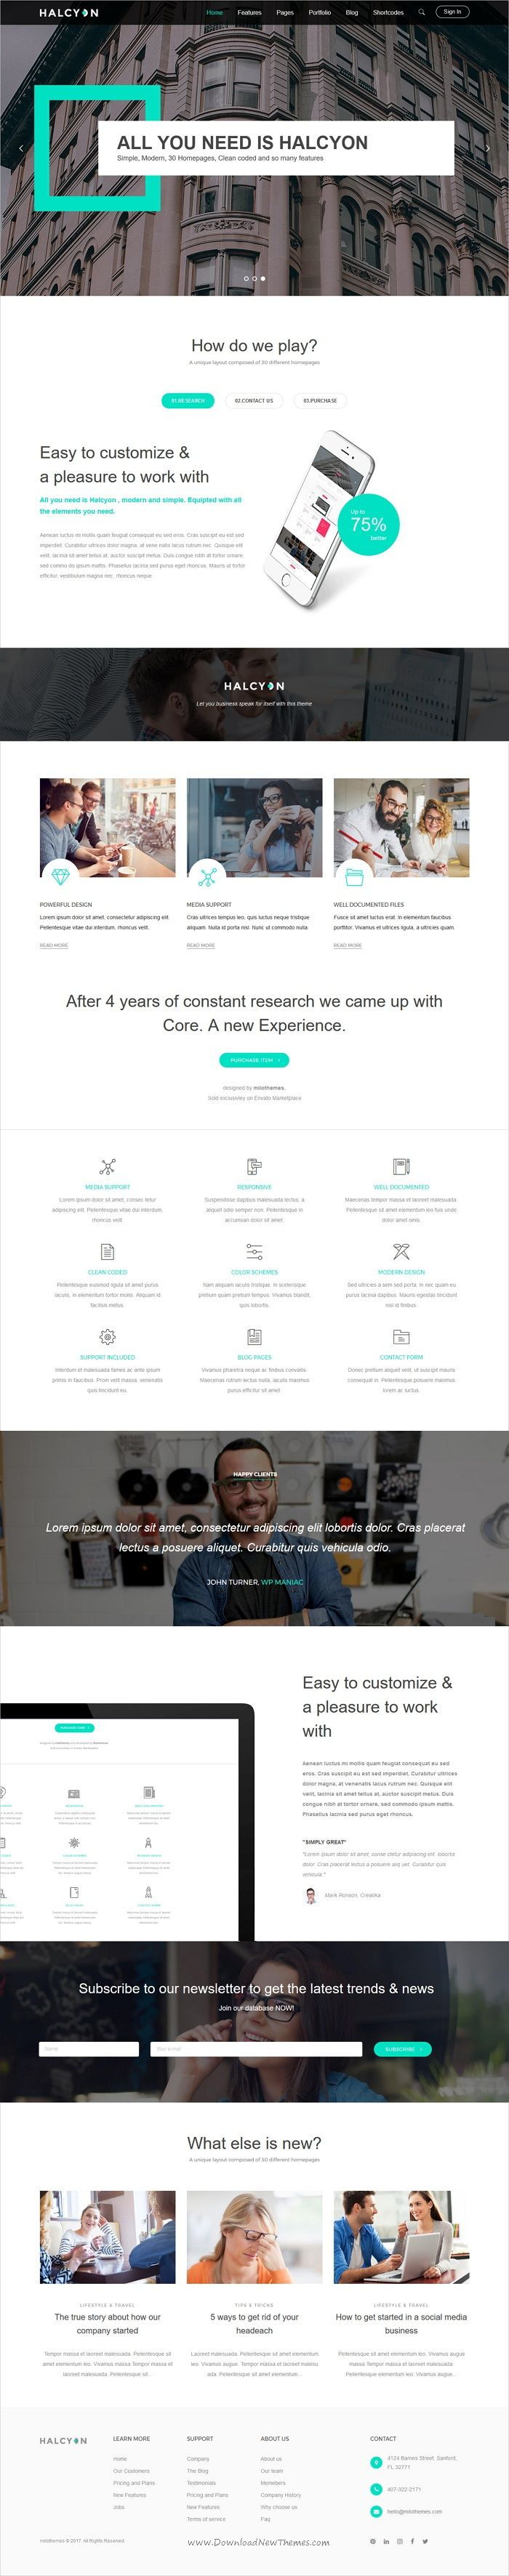 Halcyon is modern and professional design responsive #HTML bootstrap #template for stunning #corporate websites with 30+ multipurpose niche homepage layouts download now➩ https://themeforest.net/item/halcyon-multipurpose-modern-website-html5-css3-template/19383300?ref=Datasata